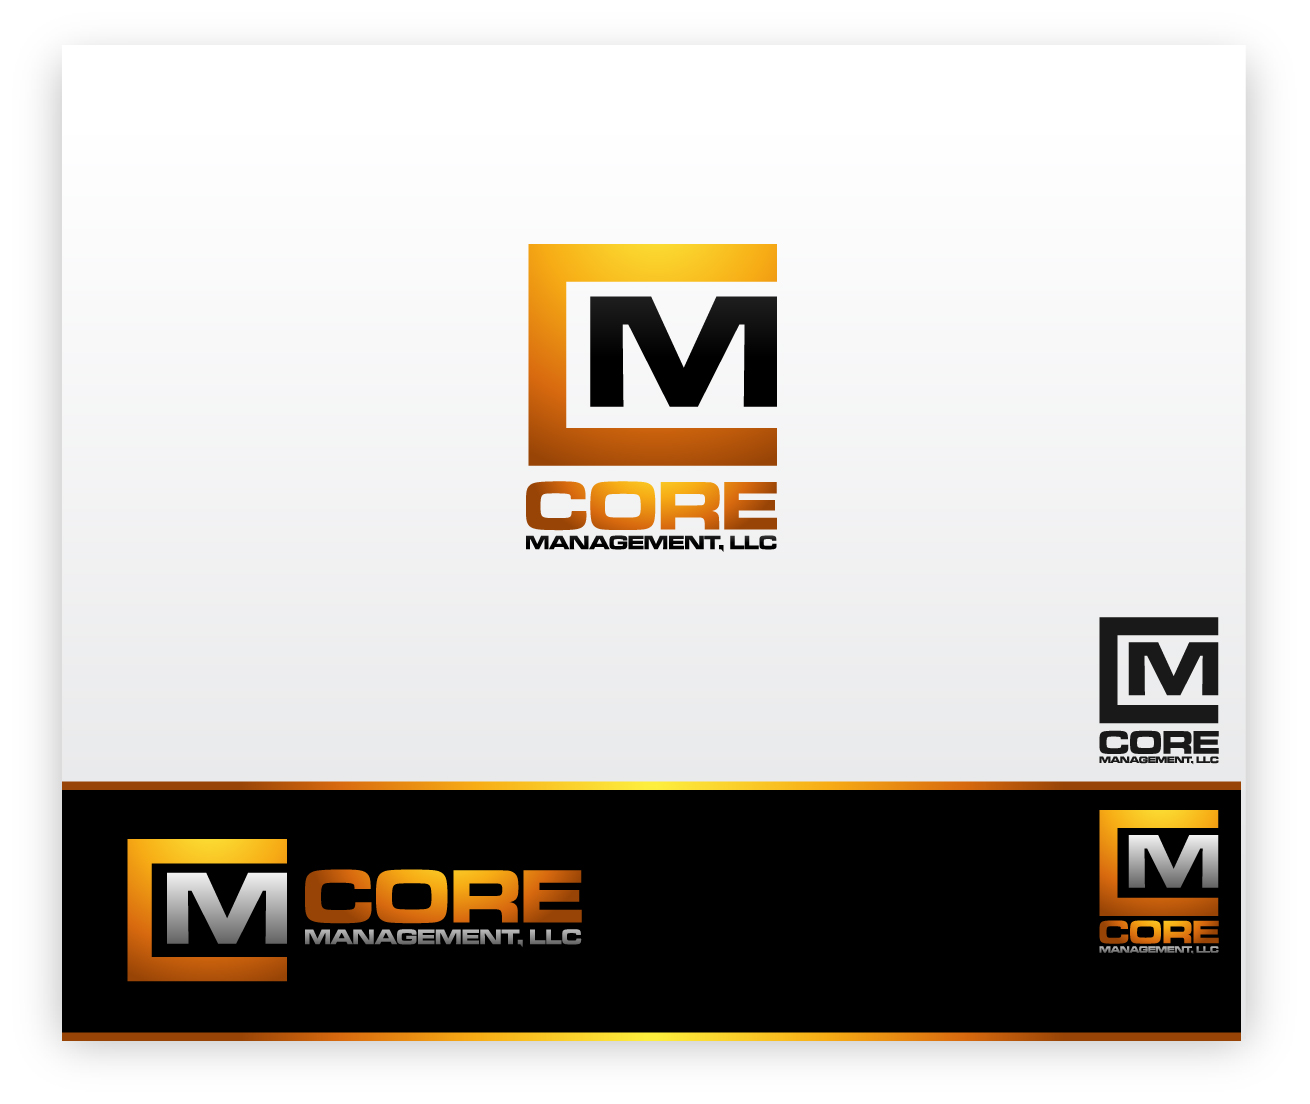 Logo Design by zoiDesign - Entry No. 141 in the Logo Design Contest Creative Logo Design for CORE Management, LLC.